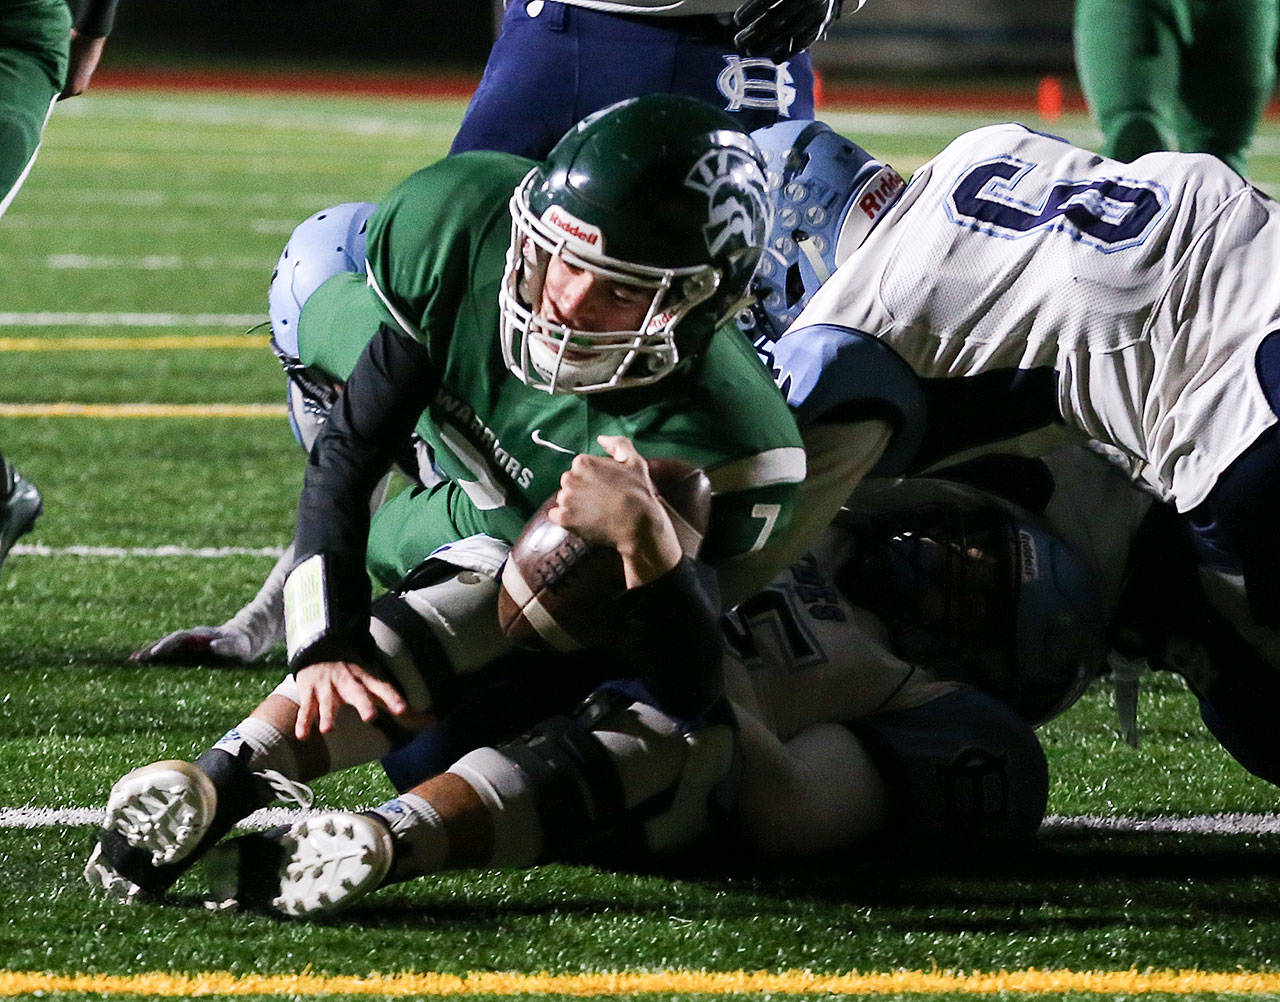 Edmonds-Woodway's Reilly Chappell rolls over Gig Harbor's Brenden Rivera for a touchdown Friday at Edmonds Stadium. (Kevin Clark / The Herald)